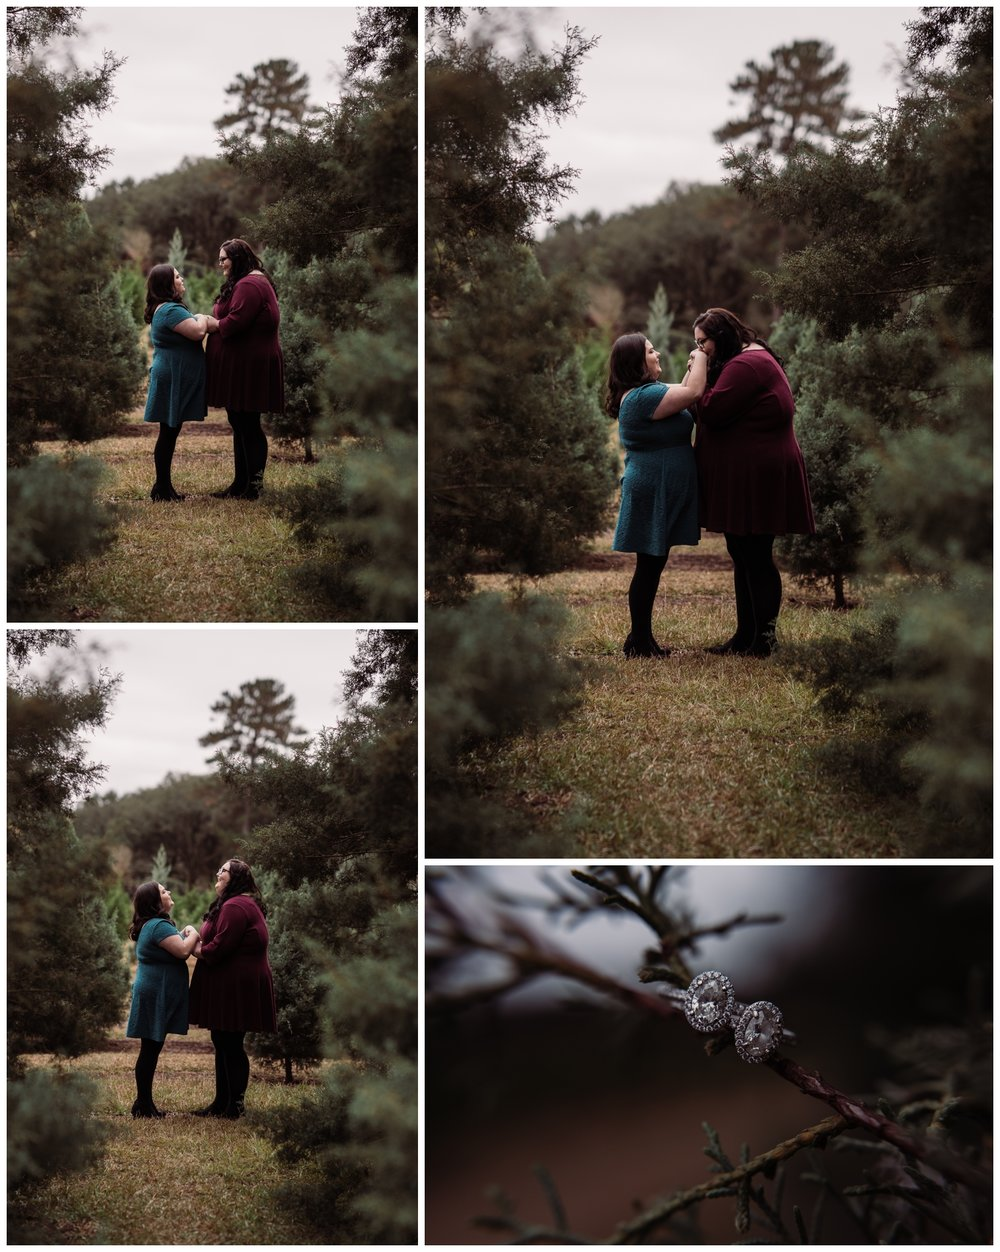 Top-New-Orleans-Wesdding-Photographer-Chirstmas-Tree-Farm-Engagement-Shoot--KallistiaPhotography_0003.jpg